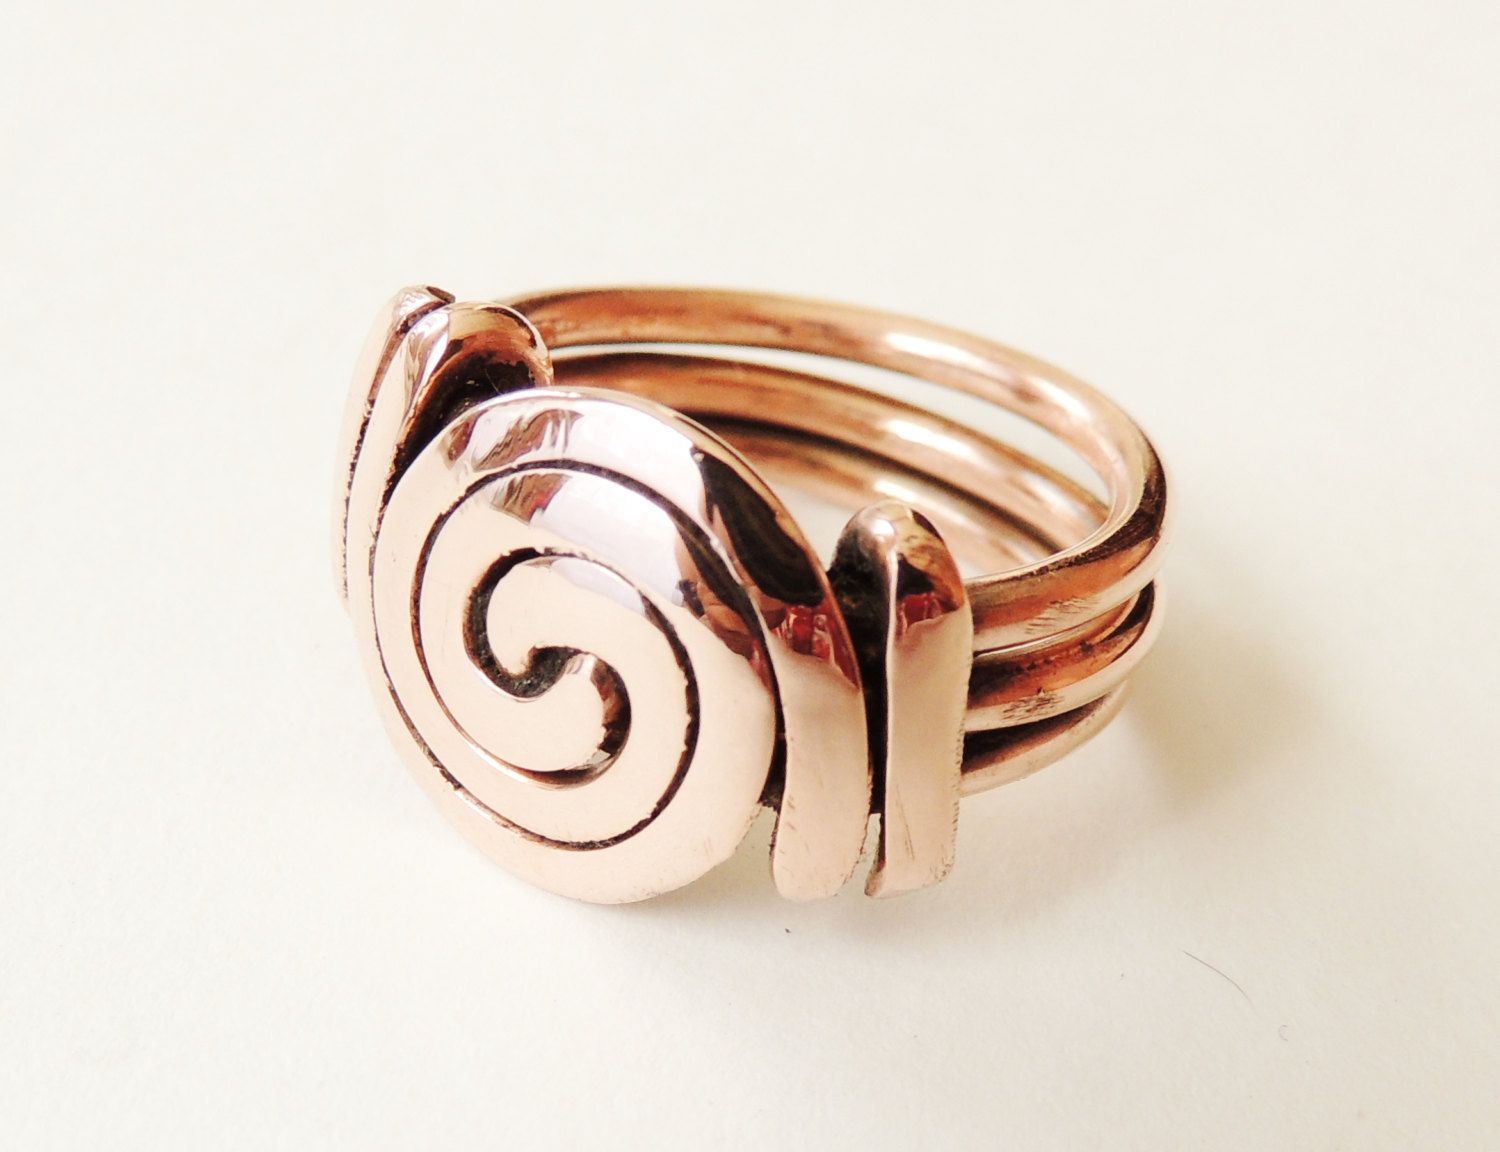 Spiral ring copper wire spiral polished copper wire by keoops8 ...